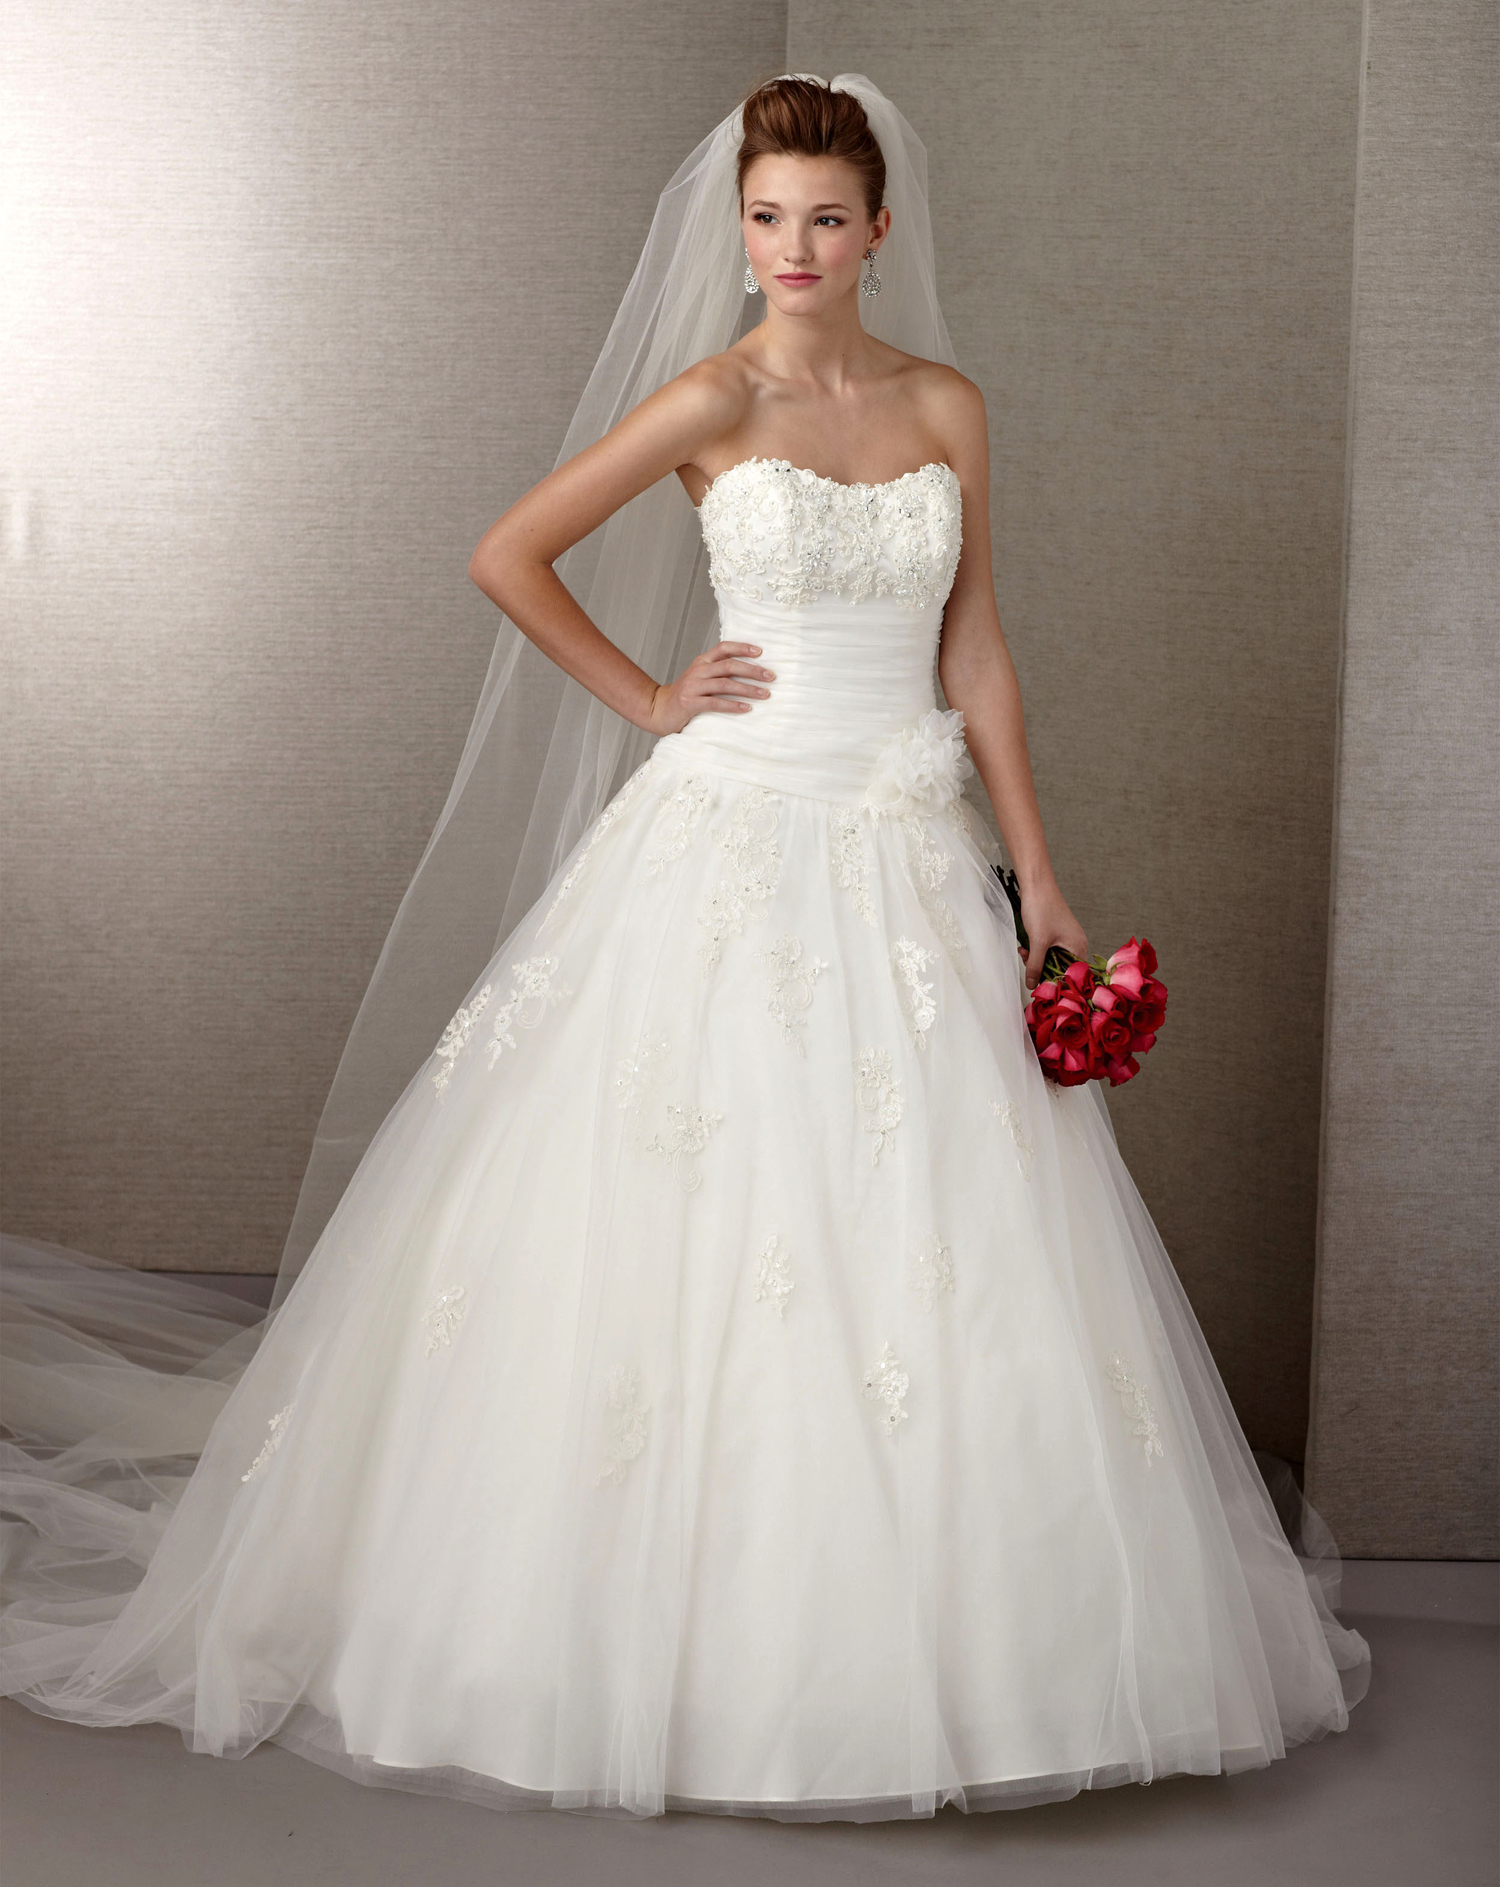 Ball gown strapless wedding dress under 100 dollars sang for Pretty ball gown wedding dresses